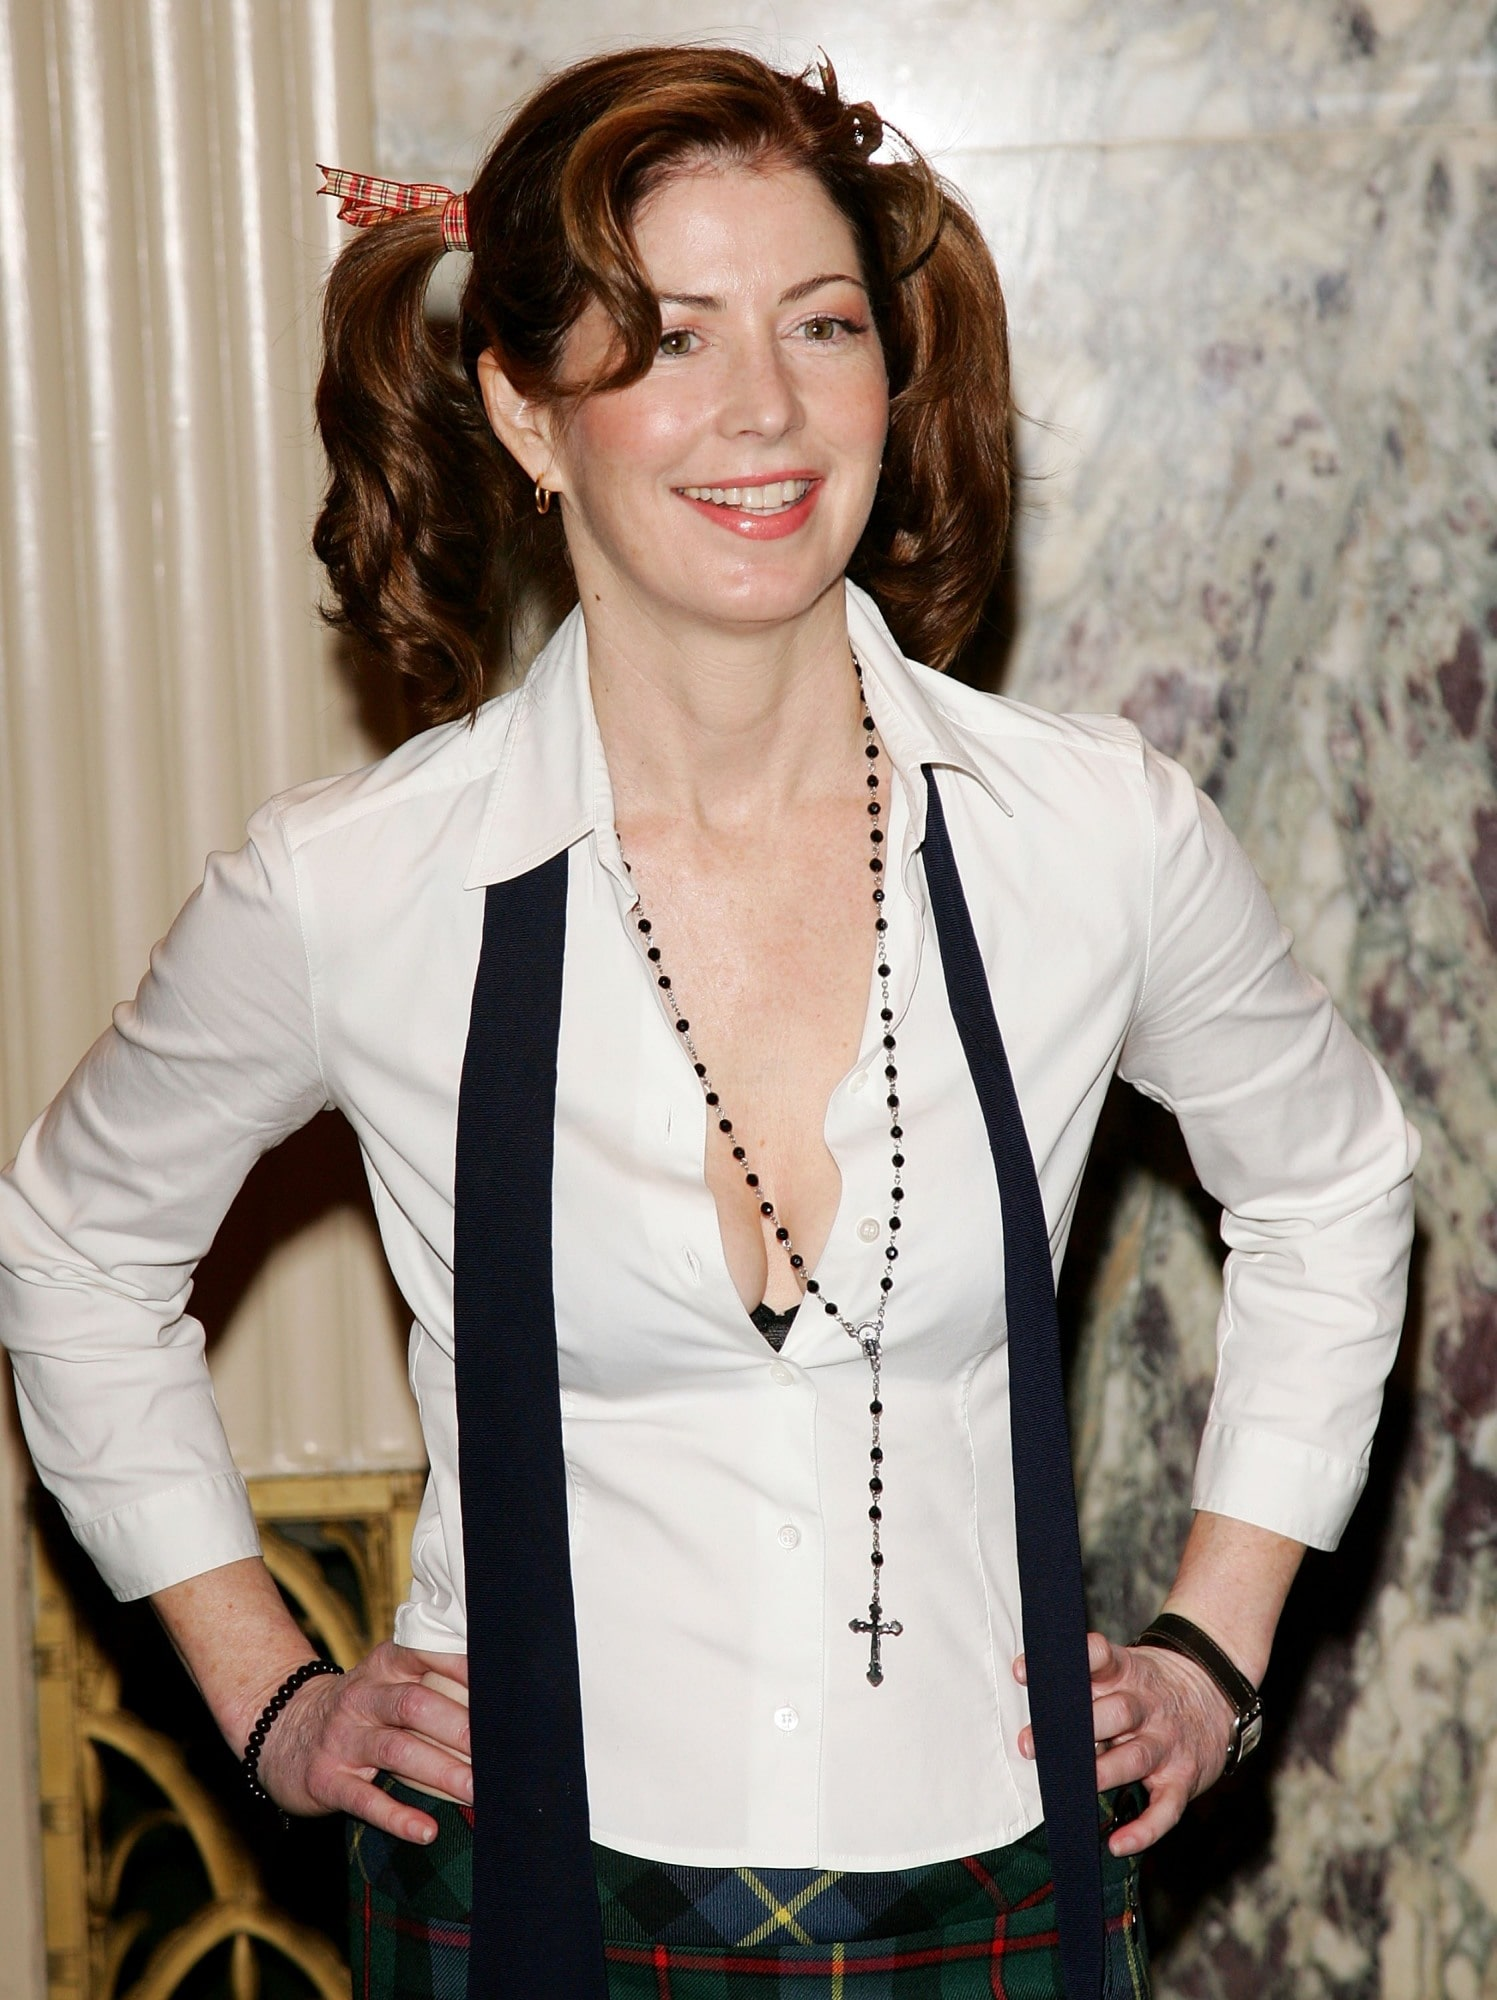 Cleavage Dana Delany naked (88 foto and video), Ass, Sideboobs, Feet, bra 2006